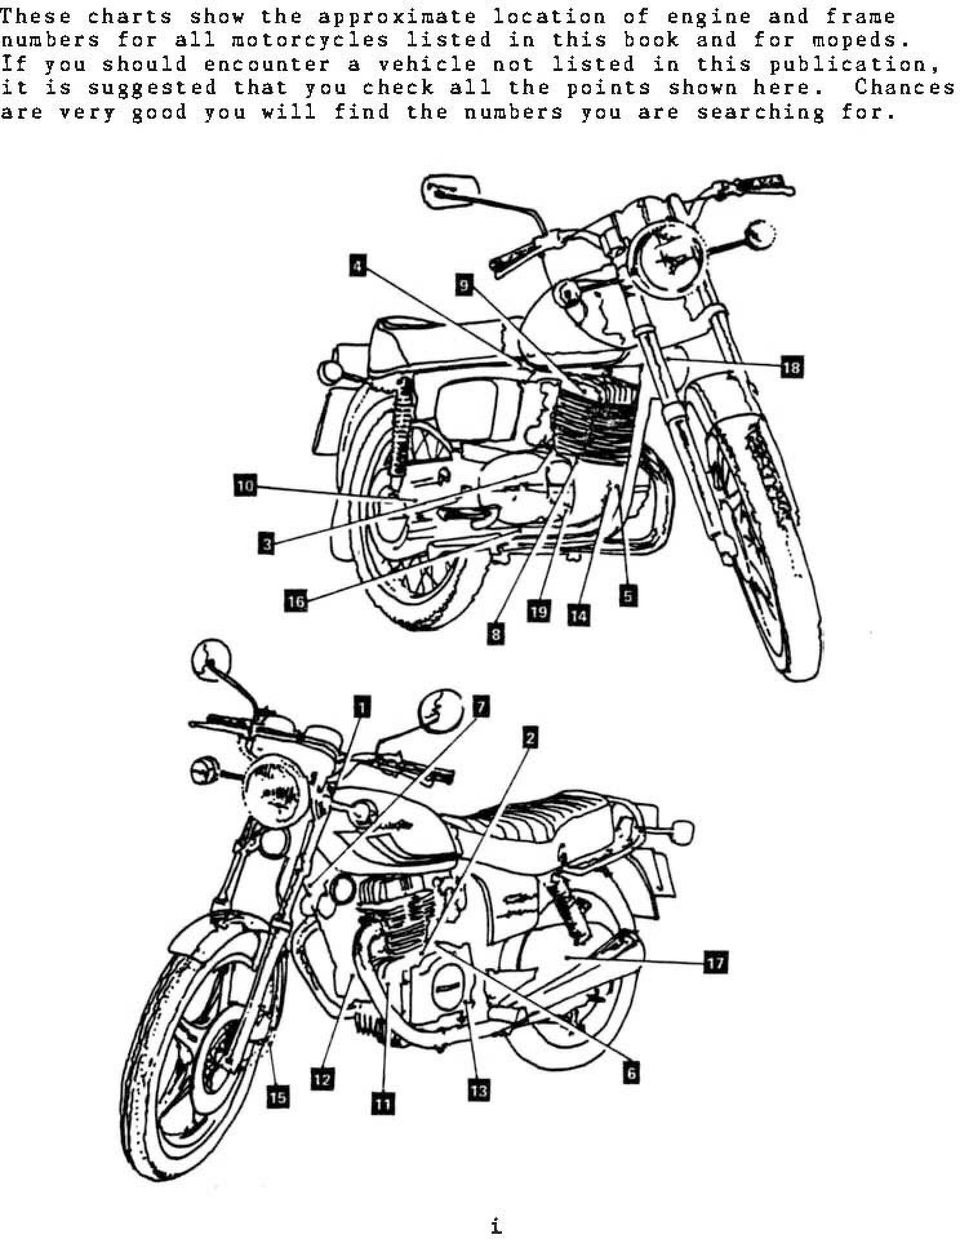 Motorcycle Identification Pdf 1970 Honda Vin Decoder If You Should Encounter A Vehicle Not Listed In This Publication It Is